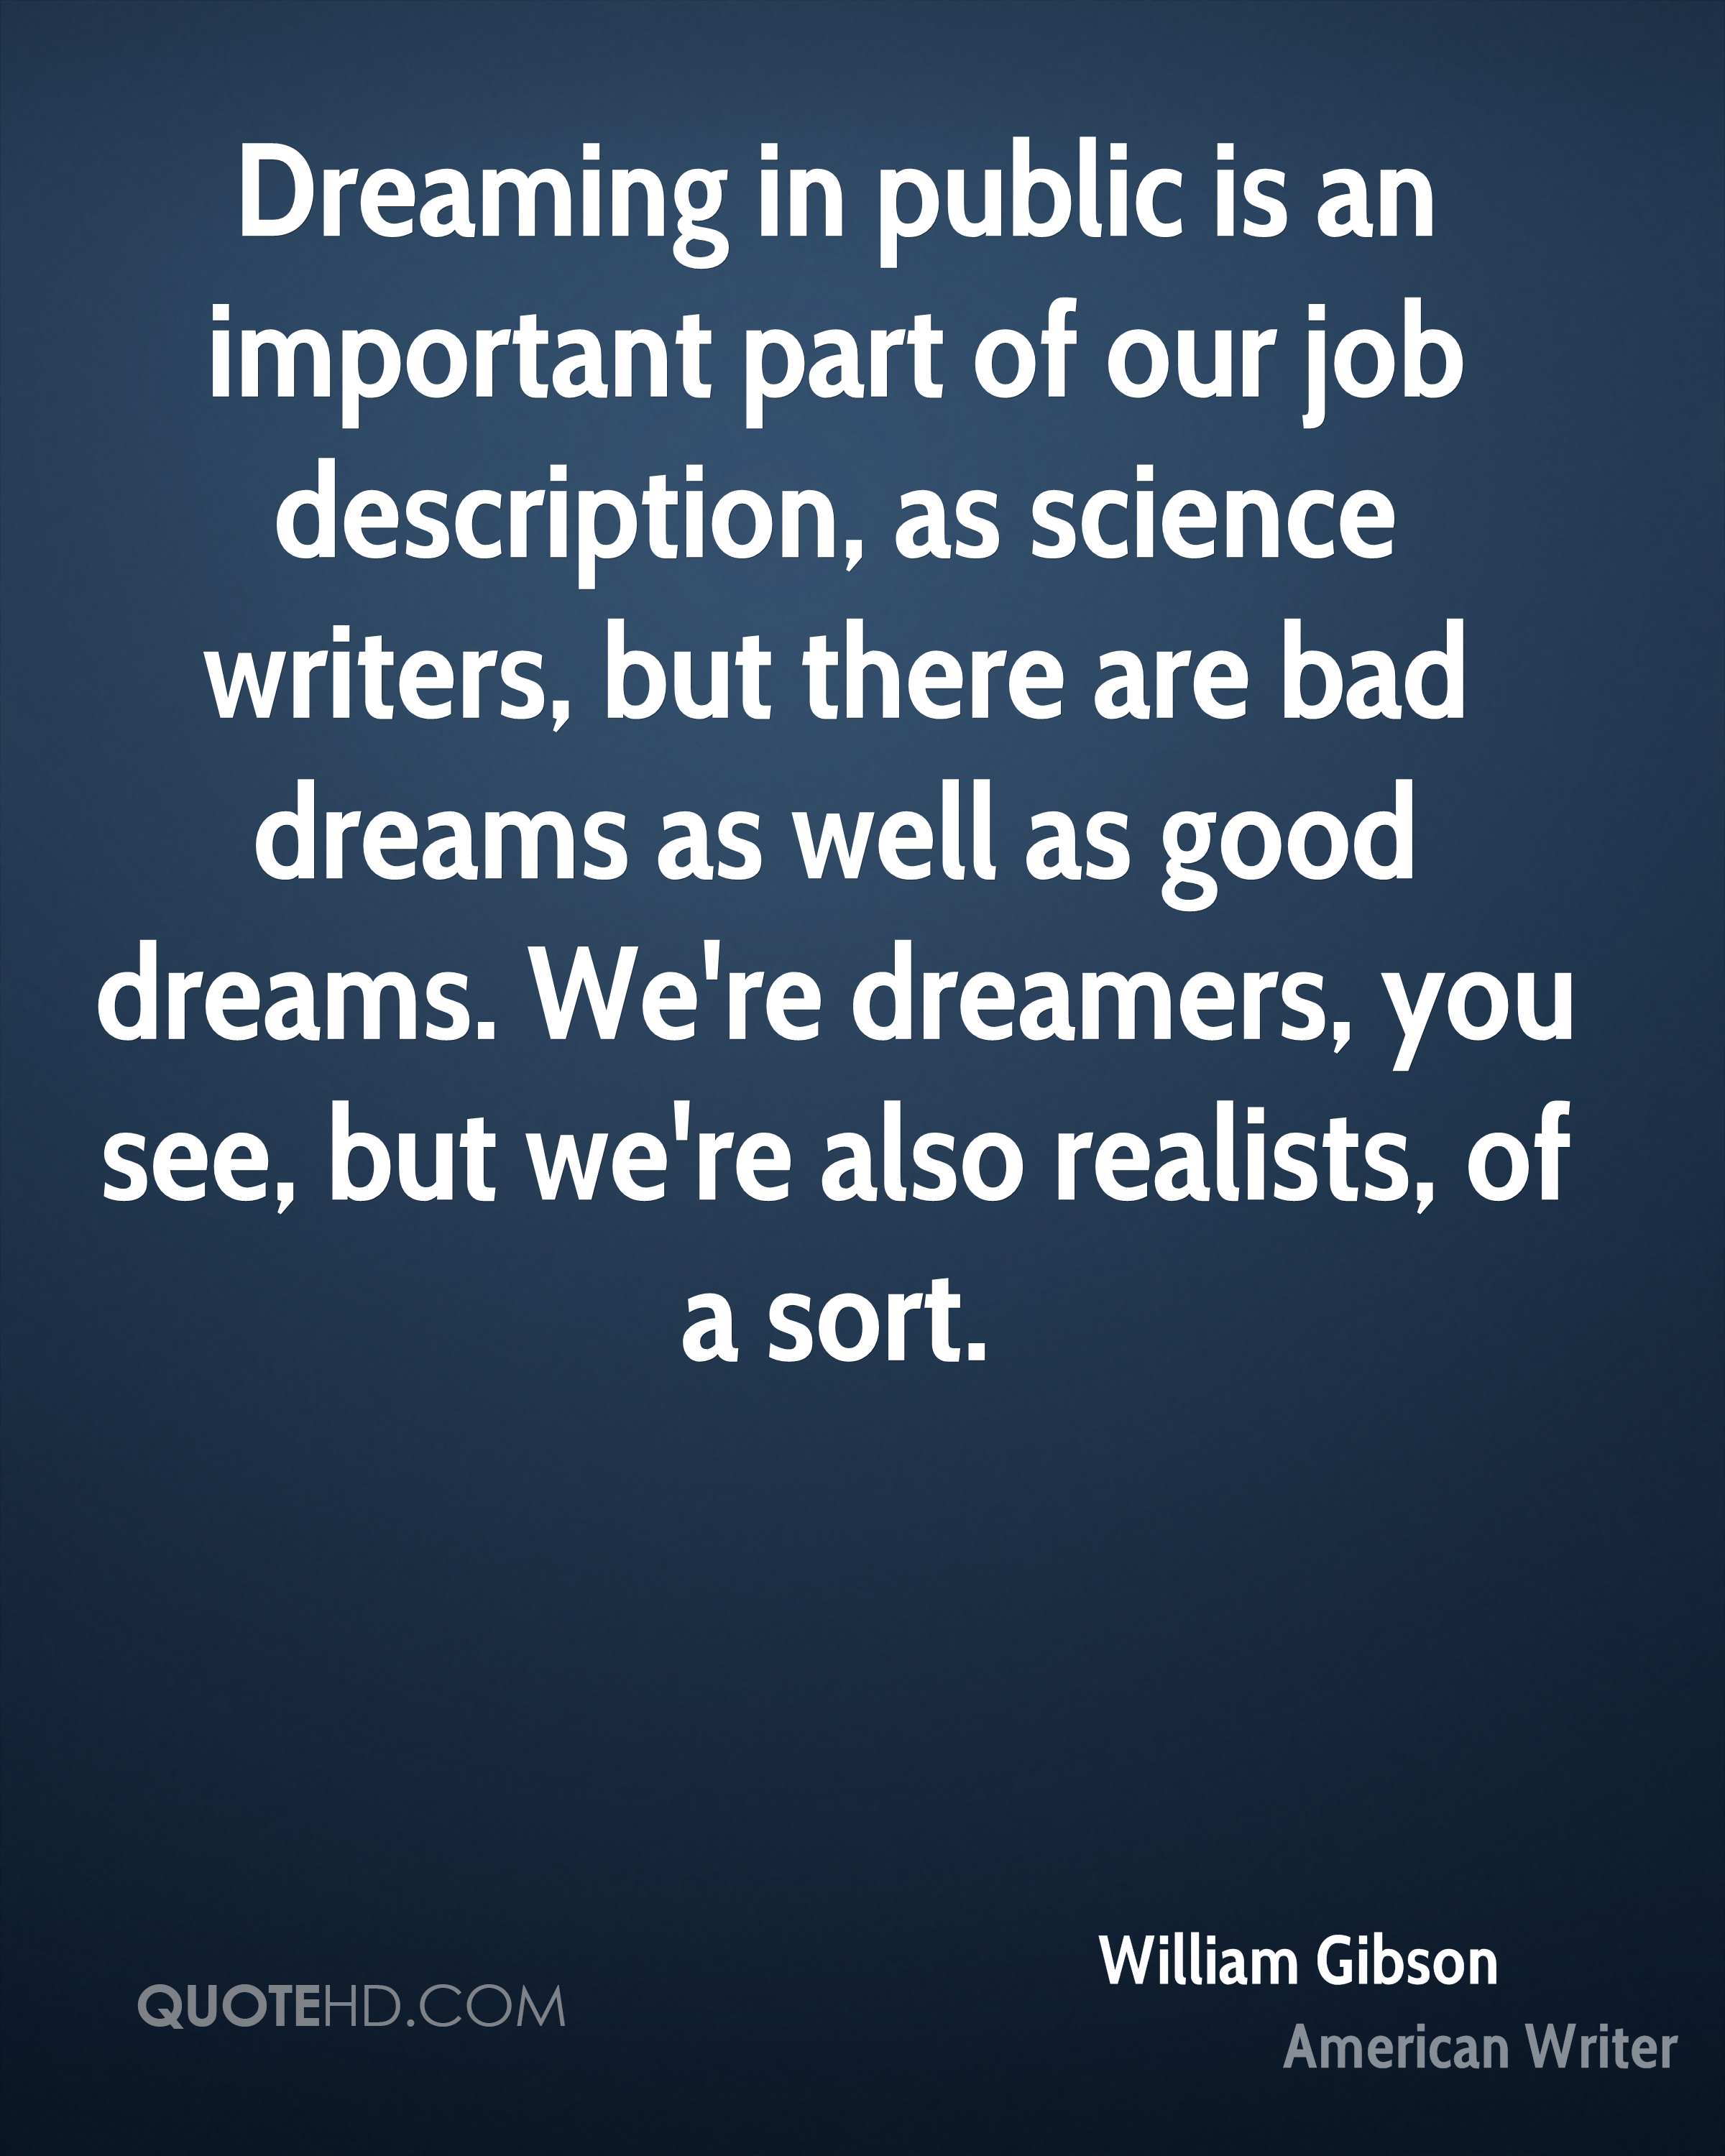 Dreaming in public is an important part of our job description, as science writers, but there are bad dreams as well as good dreams. We're dreamers, you see, but we're also realists, of a sort.